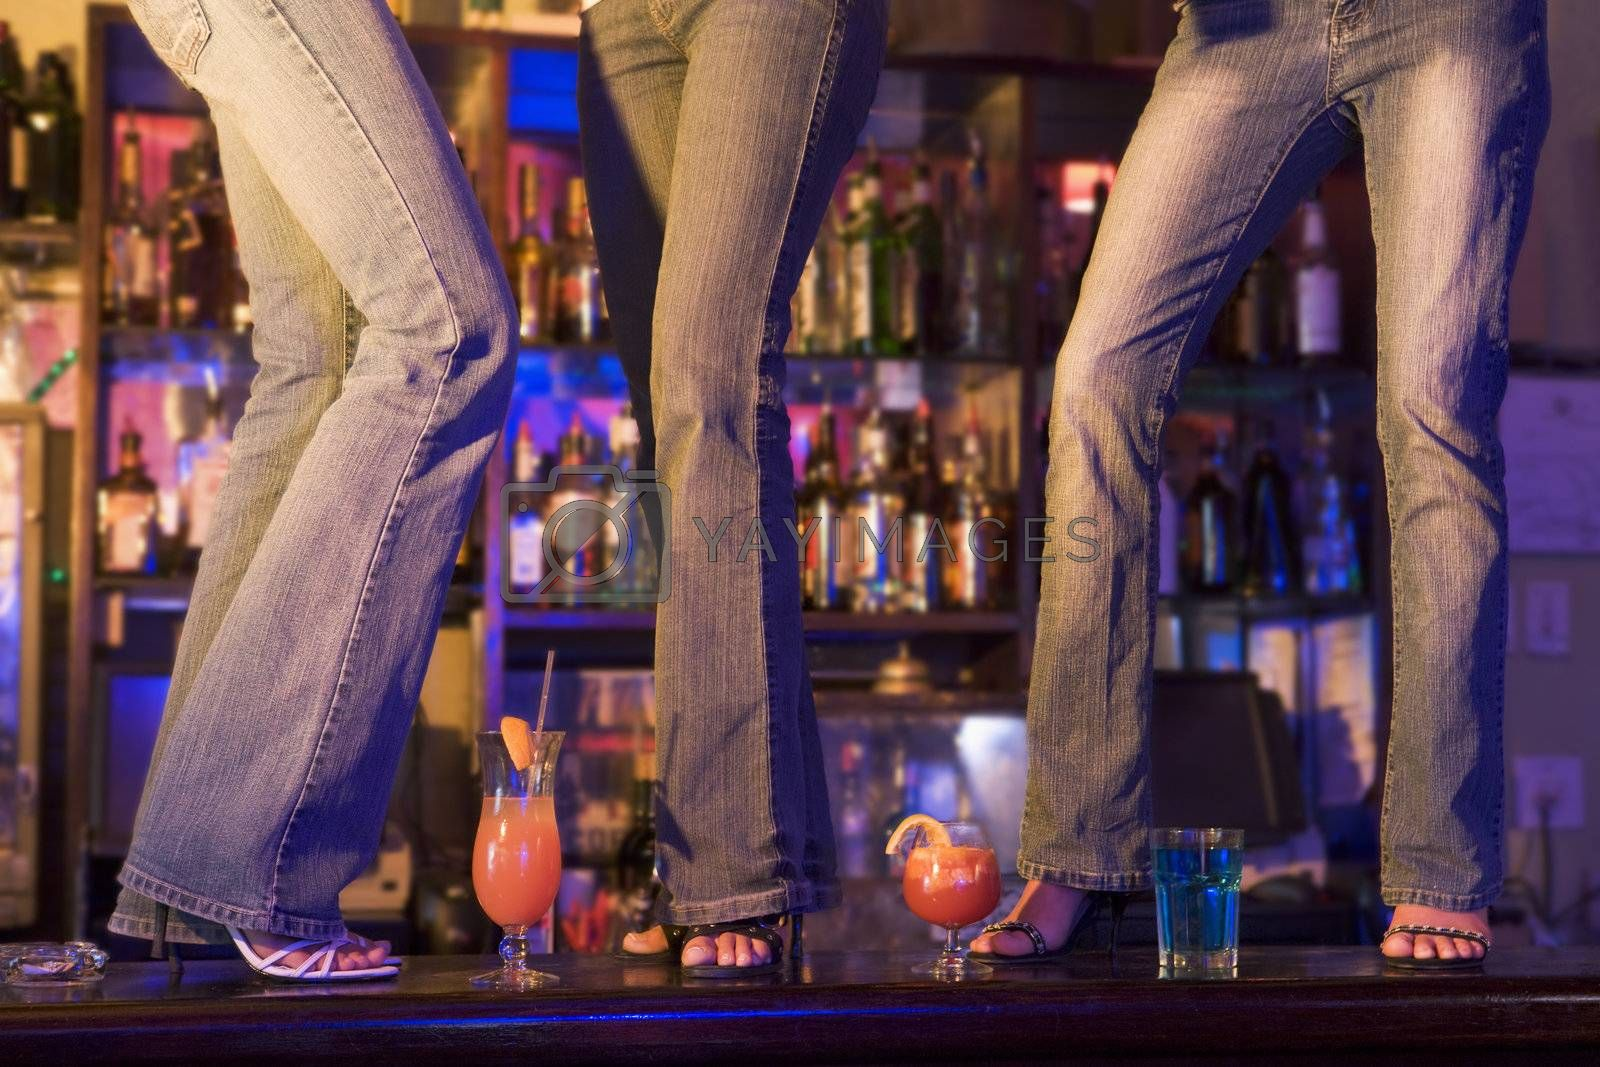 Young people dancing on a bar counter